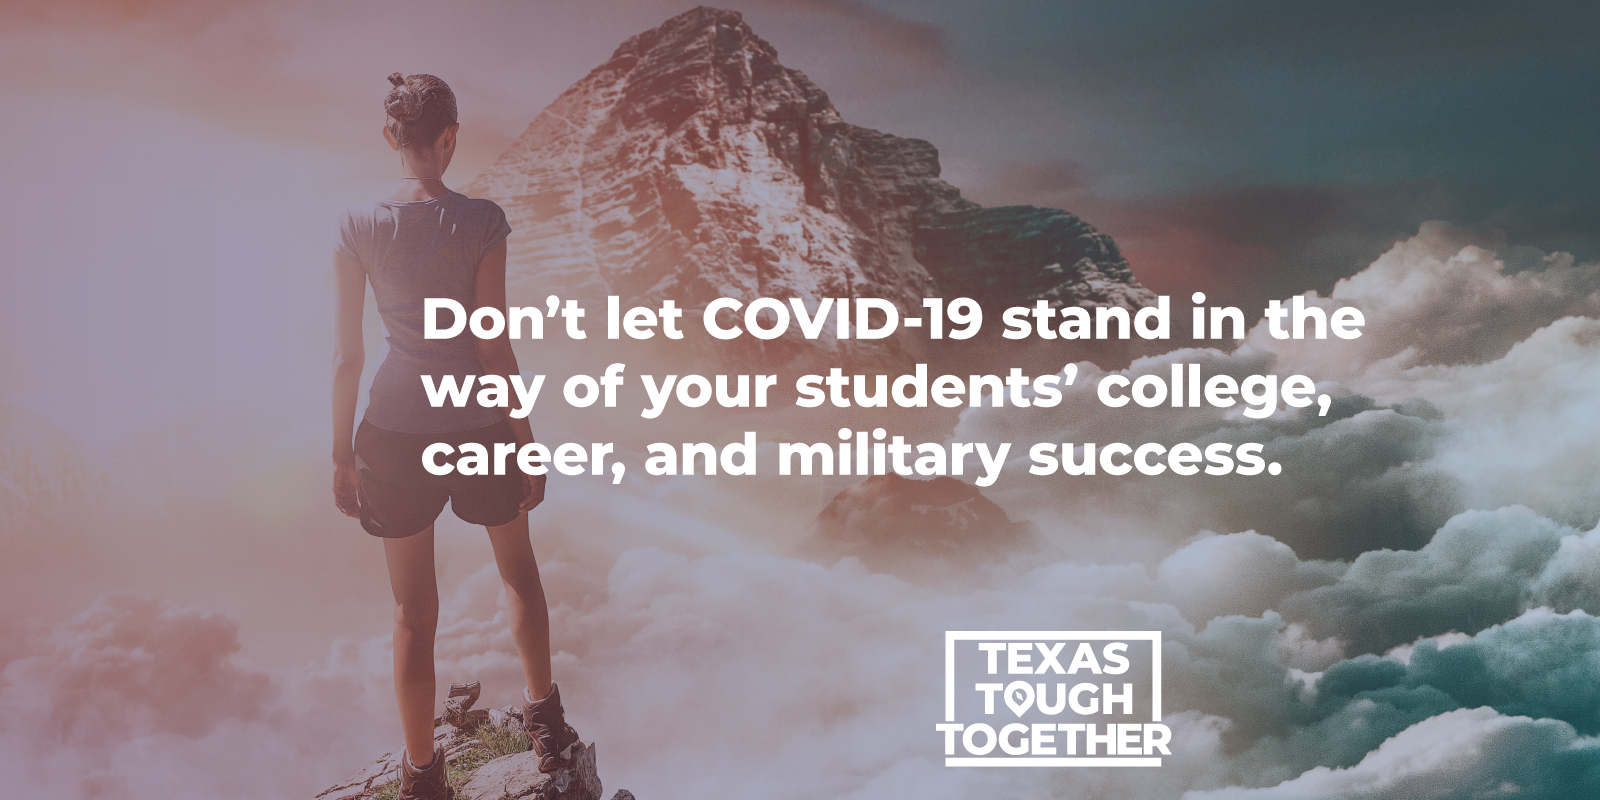 Don't let COVID-19 stand in the way of your students' college, career, and military success.